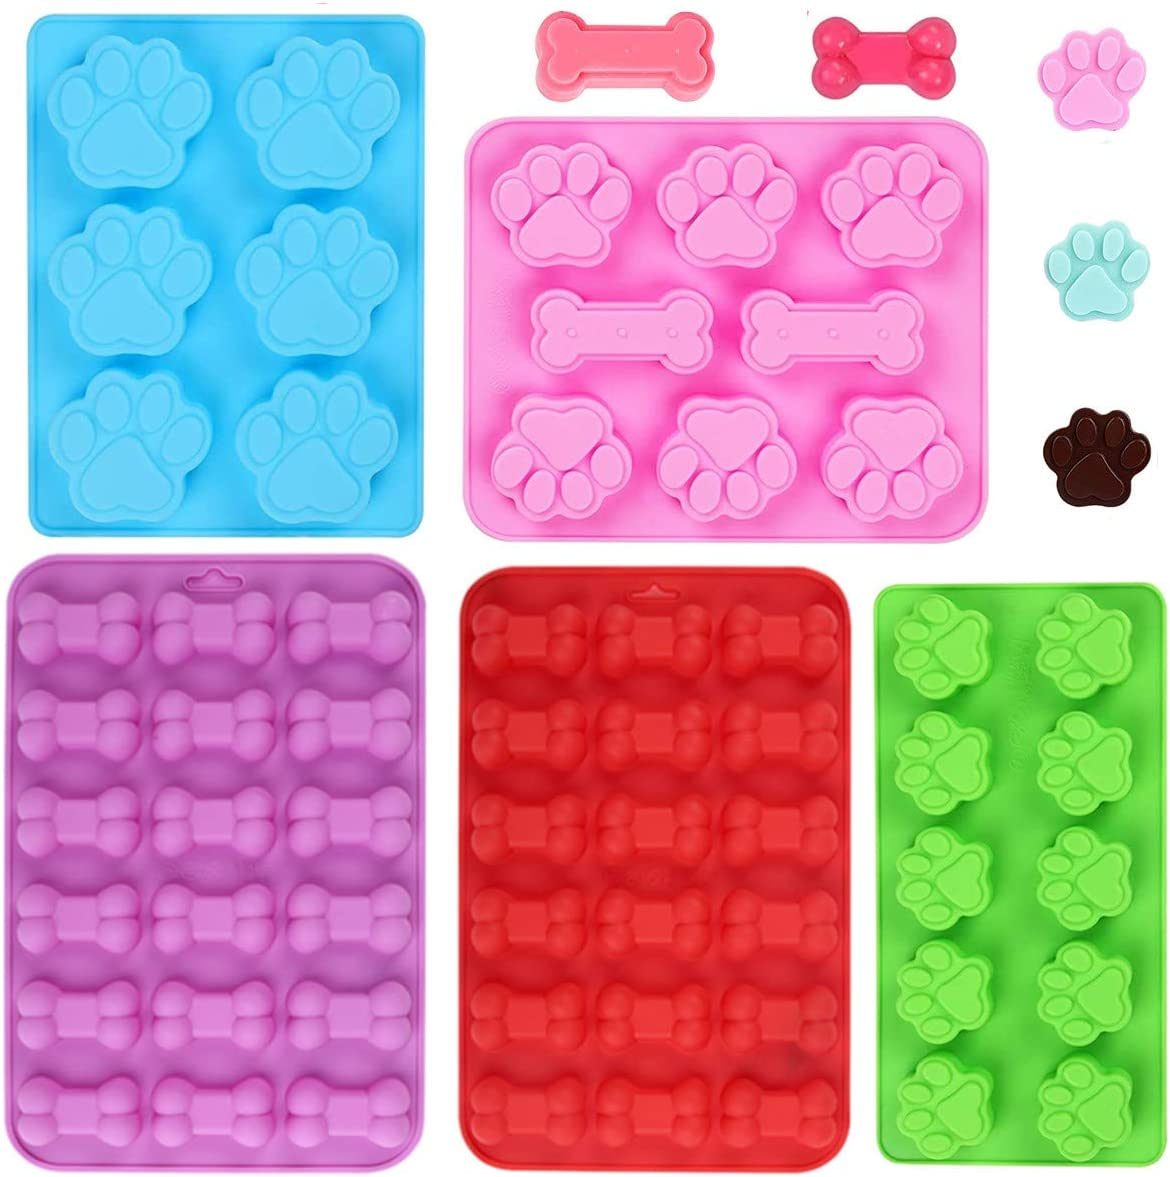 XIYUMINHONG Dog Paw and Bone Shaped Silicone Mold, Non-Stick food Grade, Reusable Silicone Mold, Used for Chocolate, Candy, Pudding, Jelly, Puppy Biscuit (5 pcs)